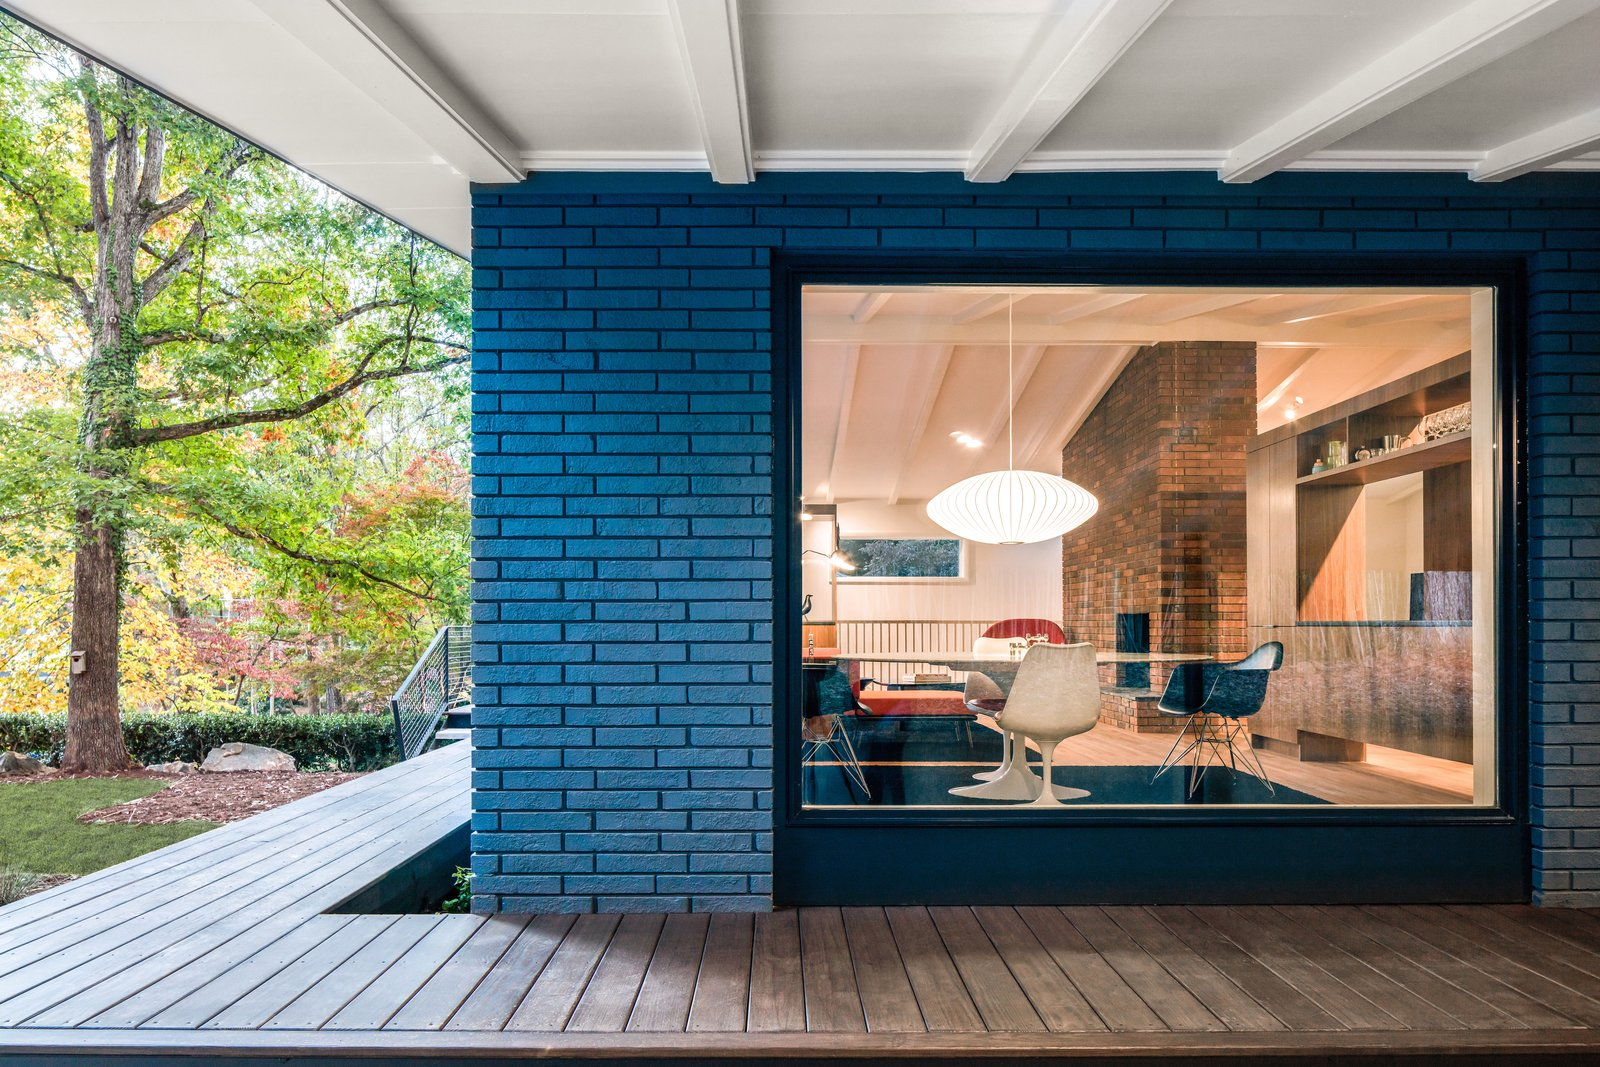 Photo 4 of 14 in Elegantly Renovated, a Midcentury Home in Raleigh Asks $975K